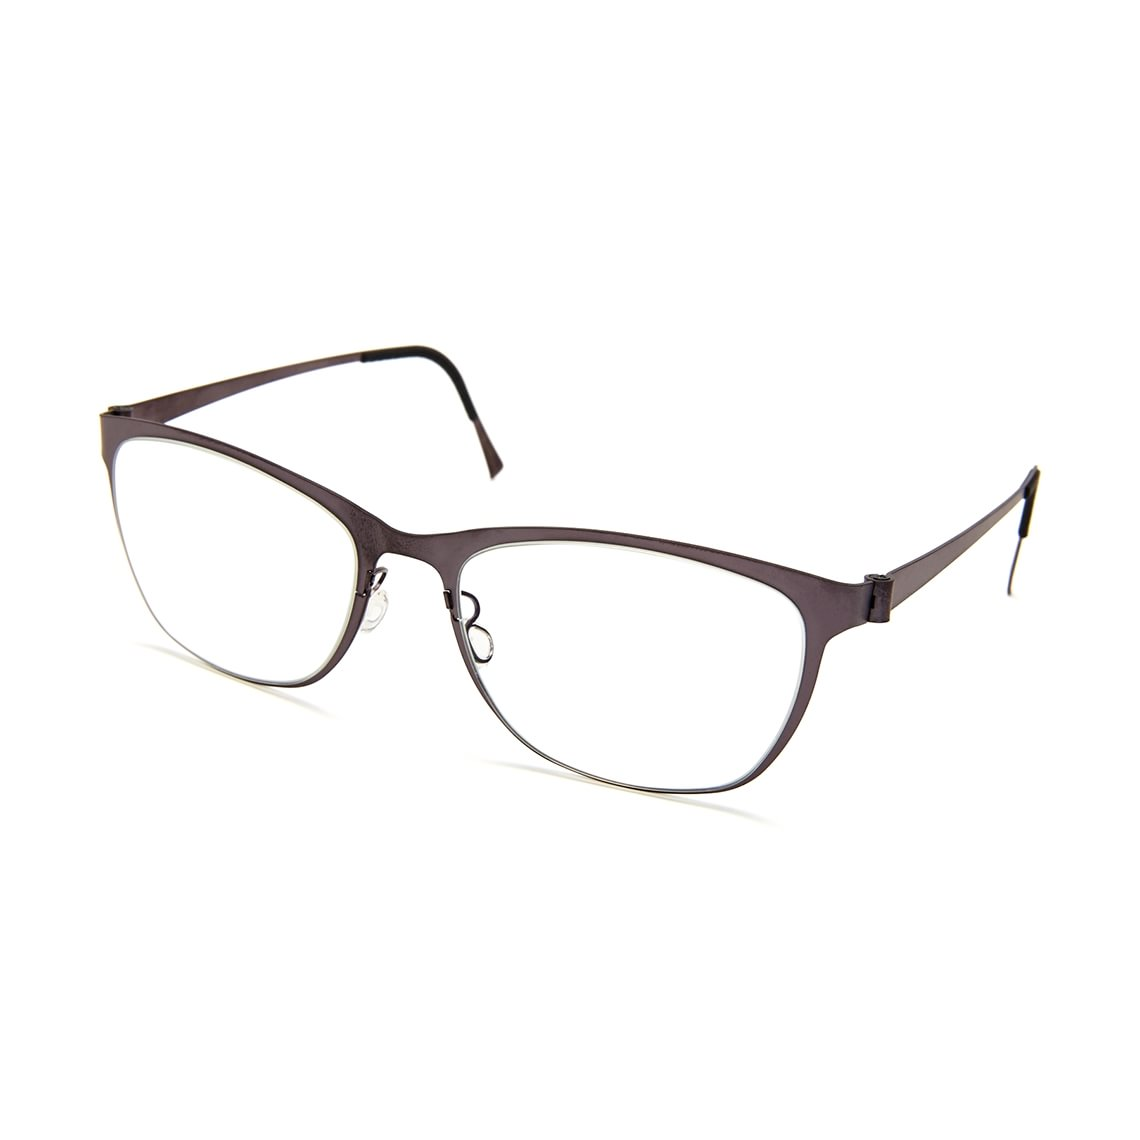 Lindberg Strip 9500 9581 temple 410 U14 2a192bf721d9a